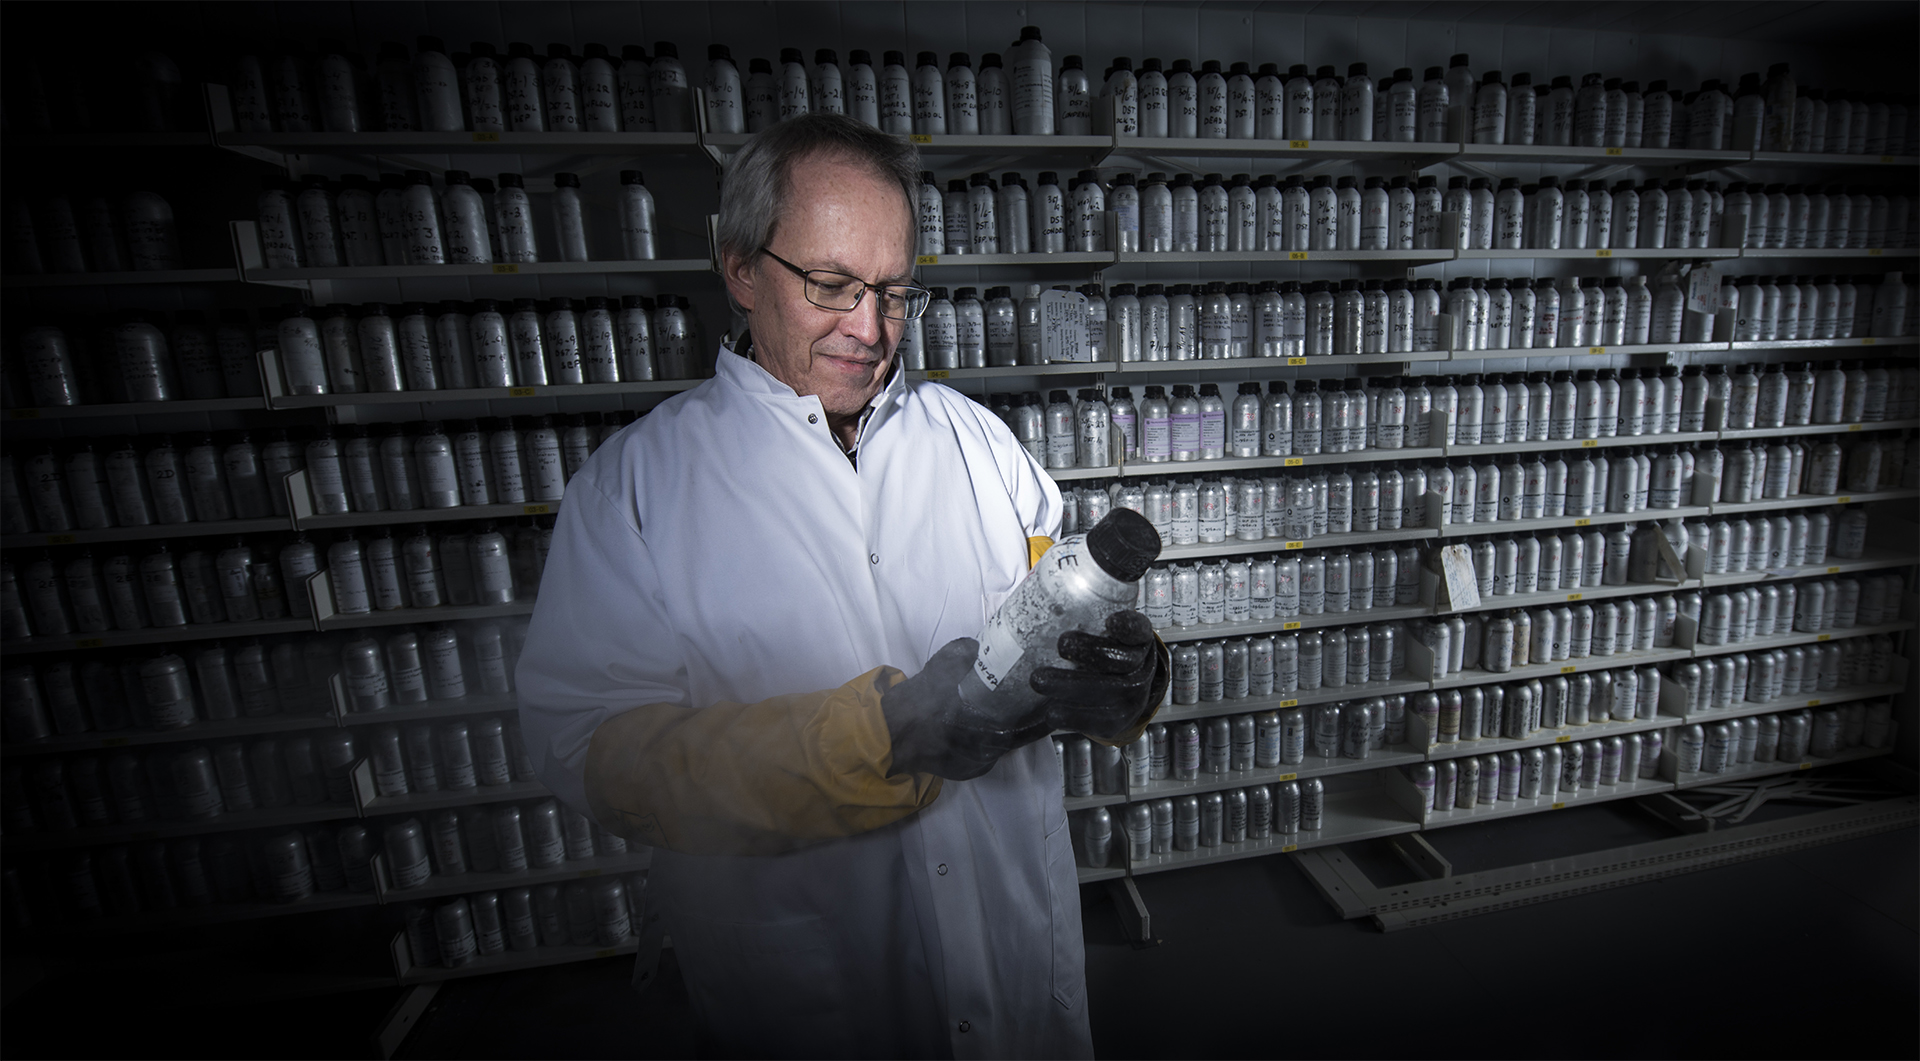 Robert W Williams in the refrigerated store which contains more than 1 000 oil samples.